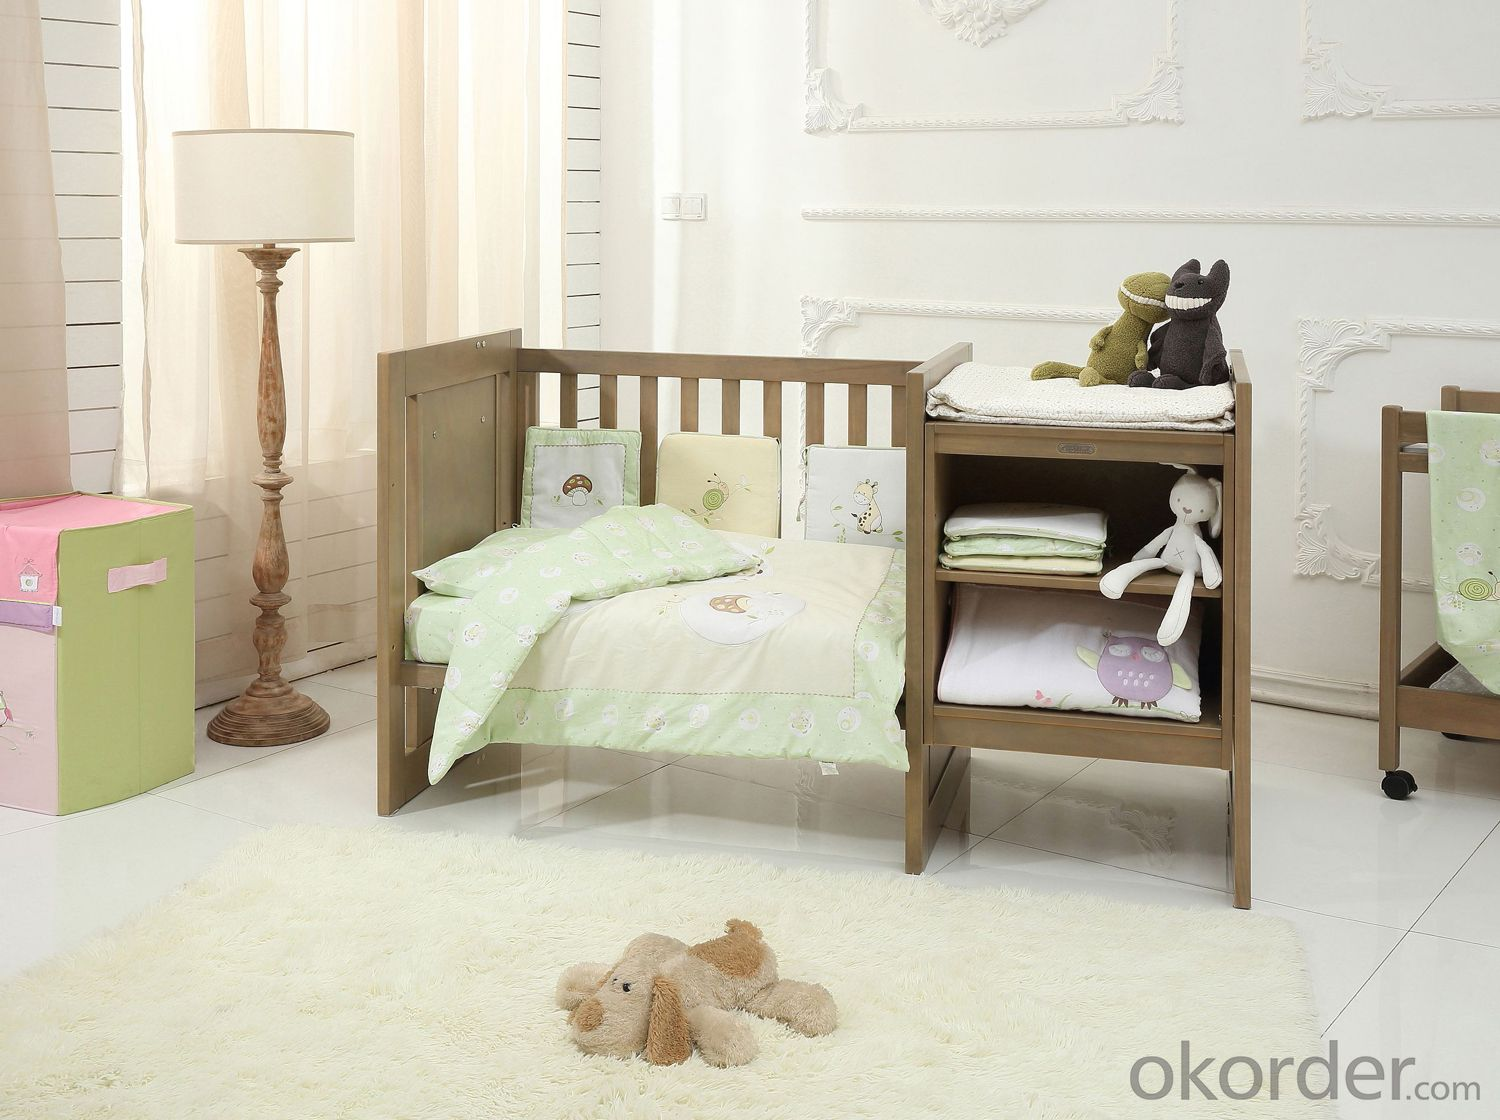 Overture Caboodle 2016 hot sale Soild Wooden Baby Cribs Baby Beds